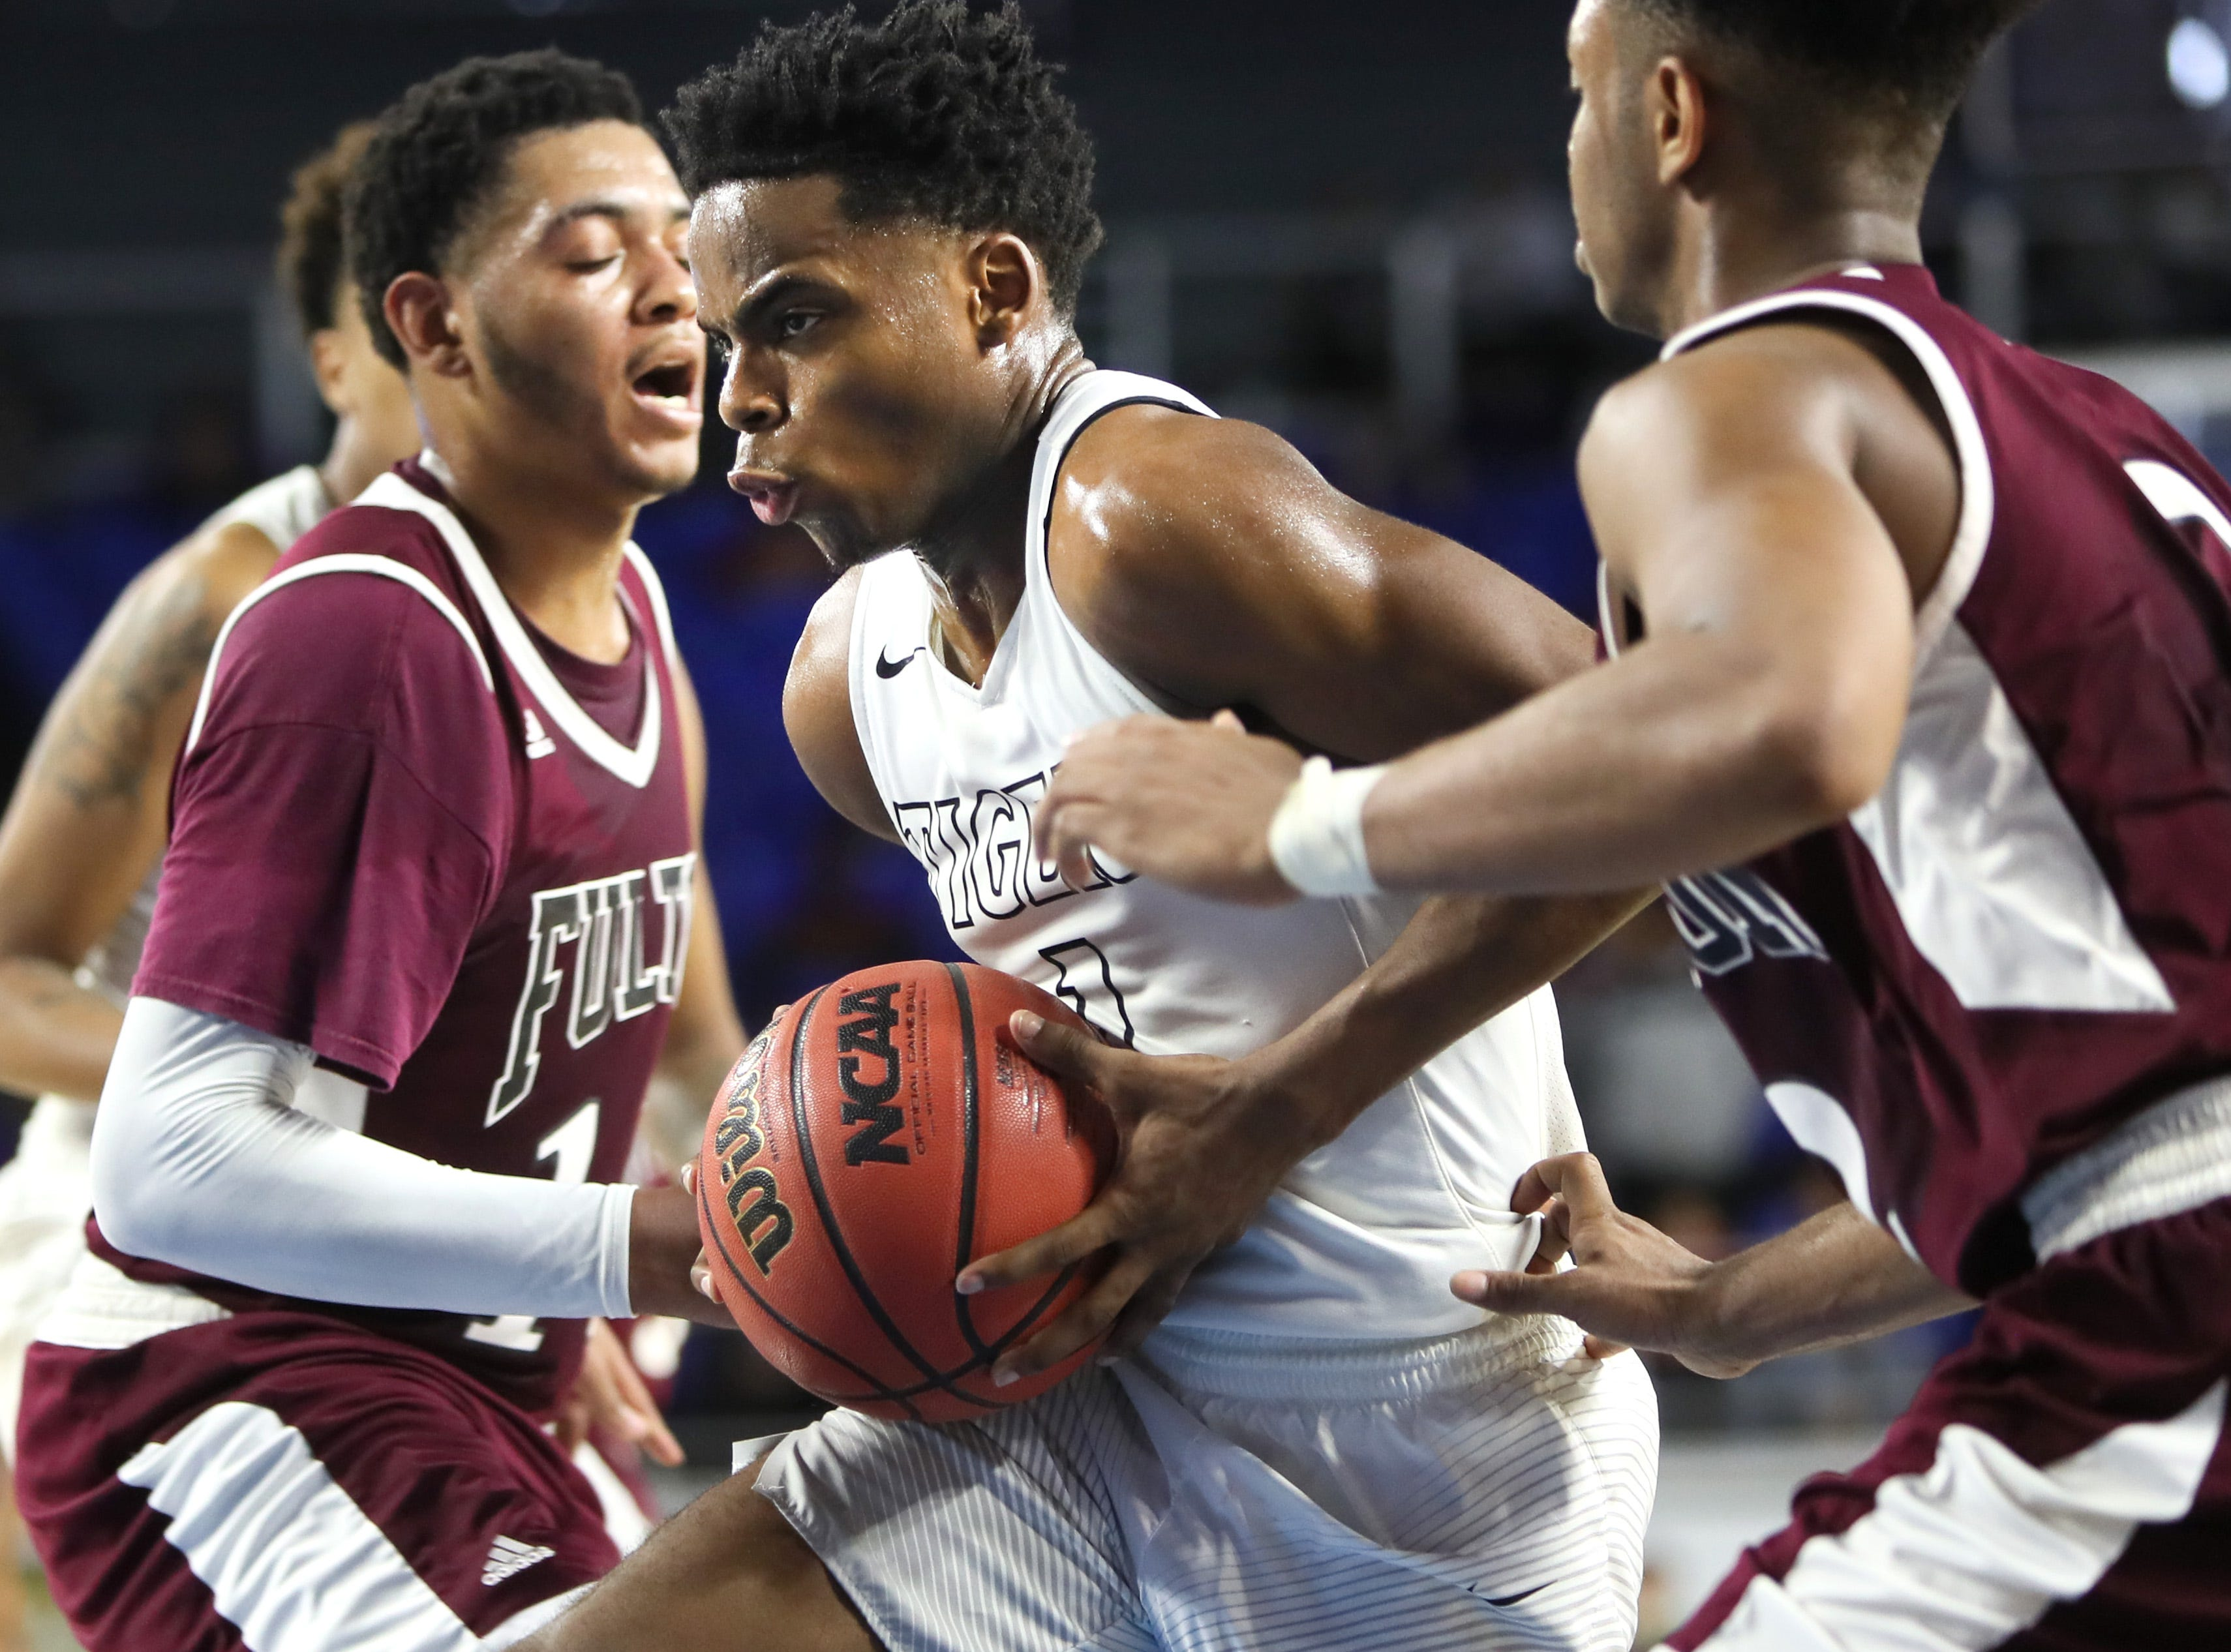 Mitchell's Mikell Rice drives past Fulton's Ron Davis III during the TSSAA Division I basketball state tournament in Murfreesboro on Wednesday, March 13, 2019.